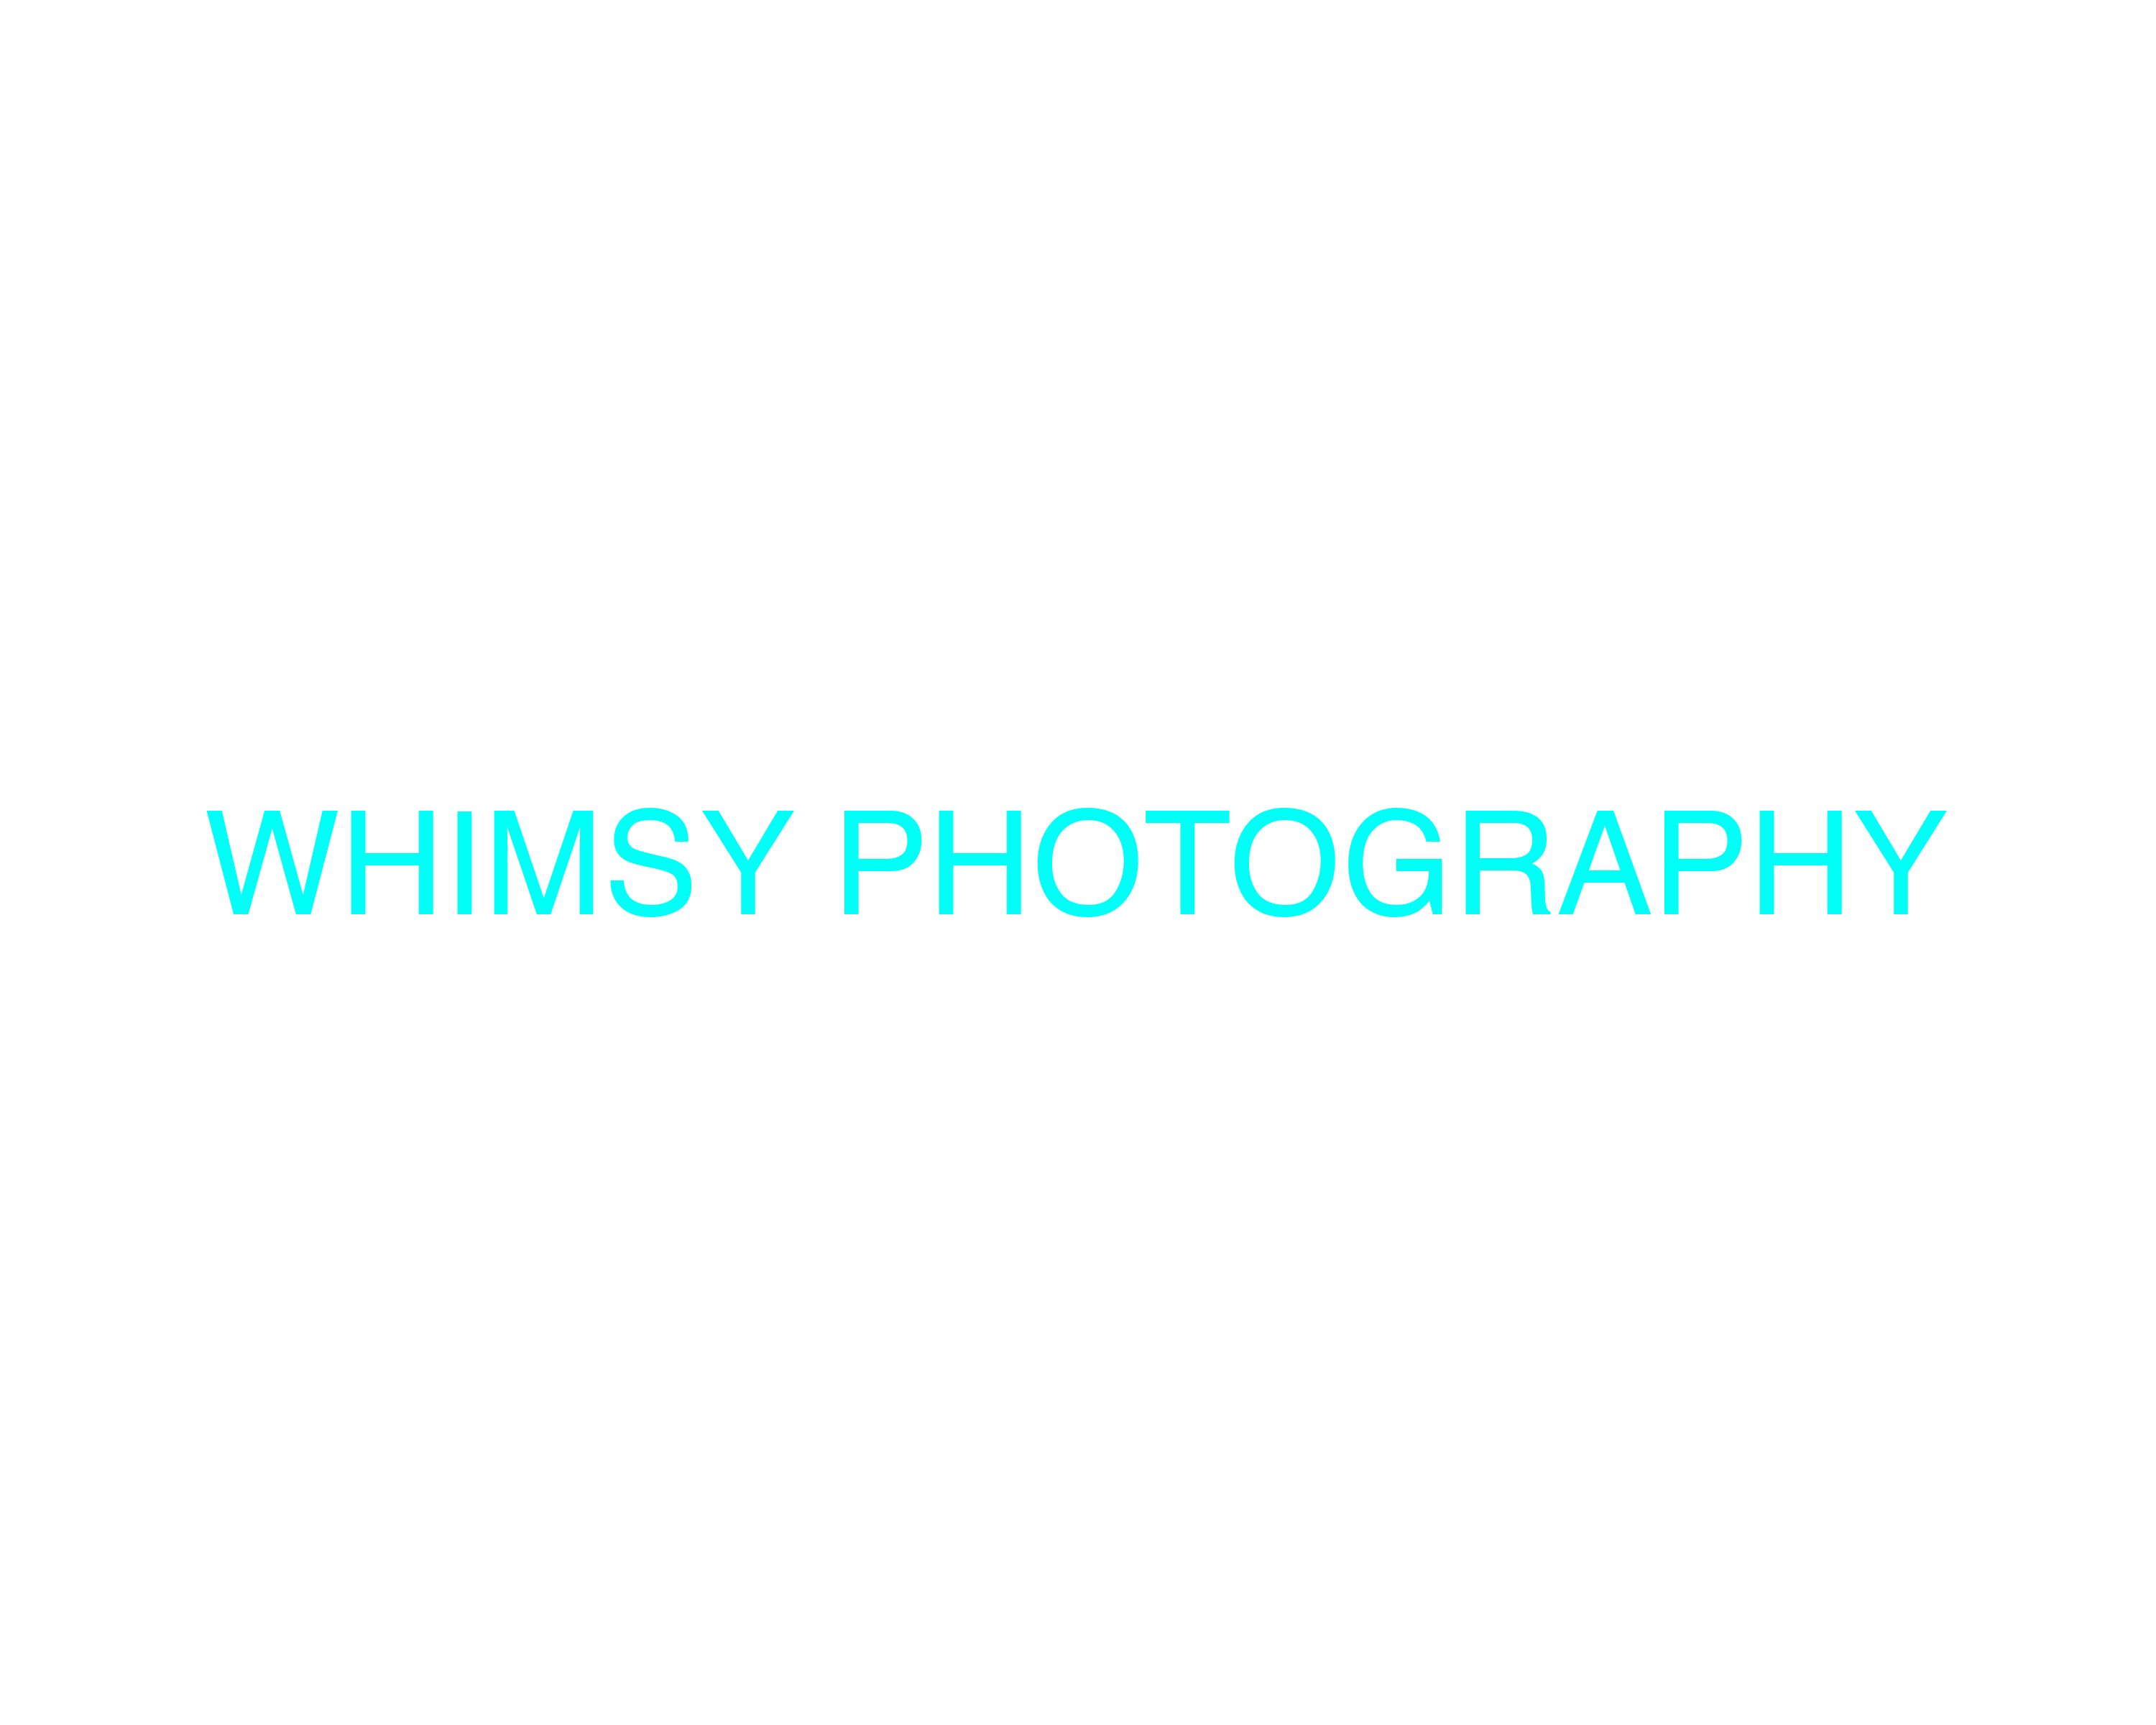 Whimsy Photography logo